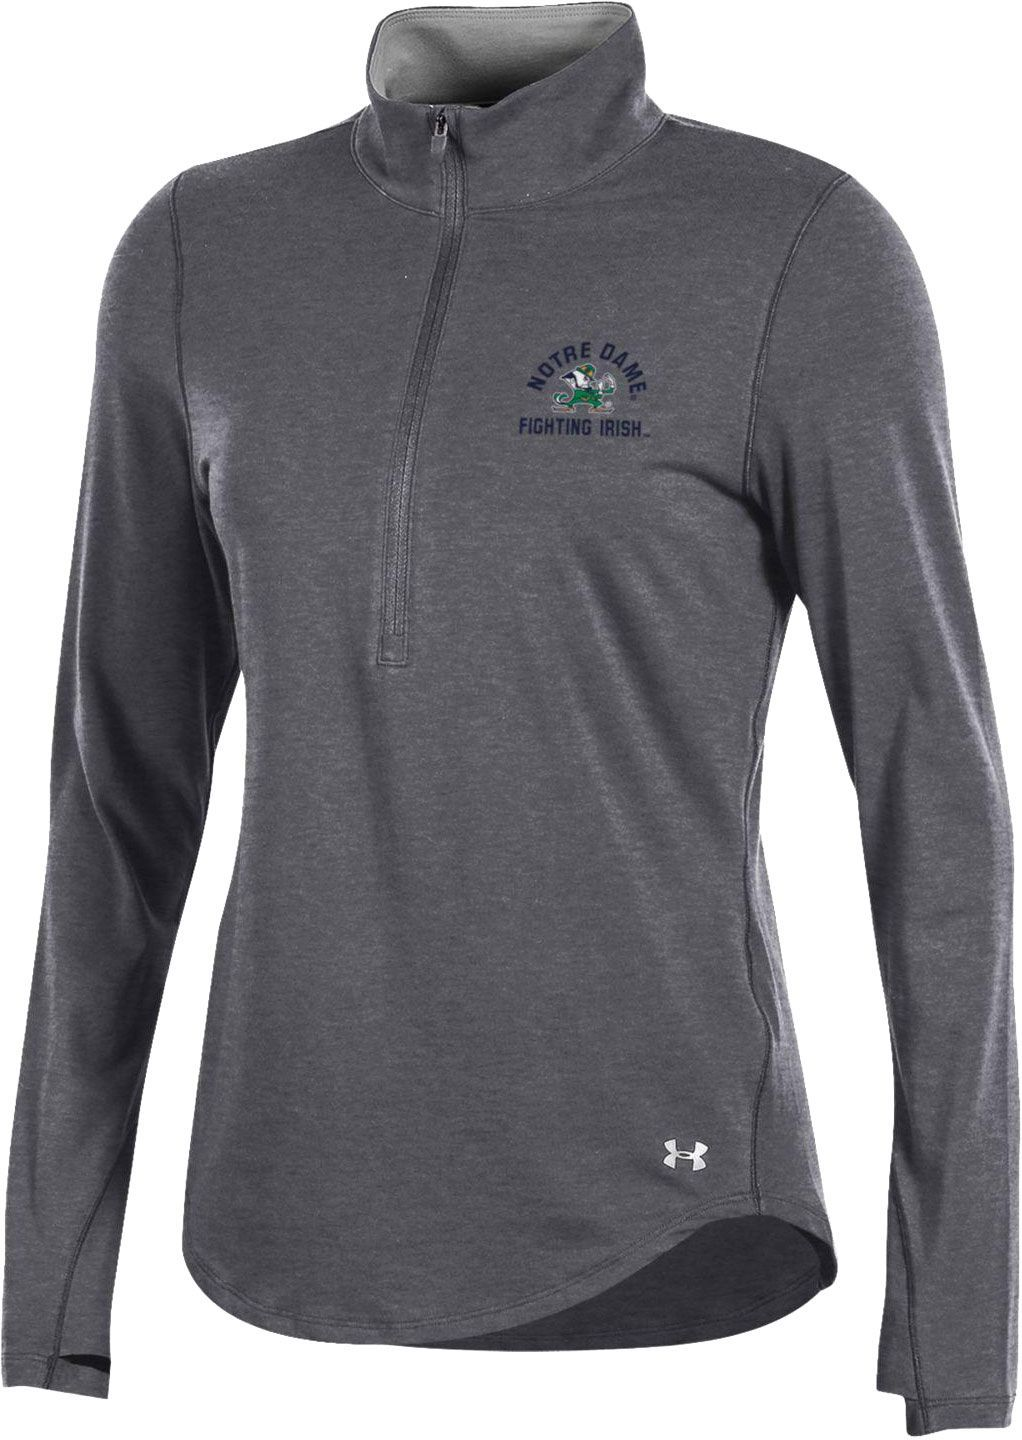 4f17fa8e Under Armour Women's Notre Dame Fighting Irish Grey Charged Cotton Quarter-Zip  Shirt | DICK'S Sporting GoodsProposition 65 warning iconProposition 65 ...